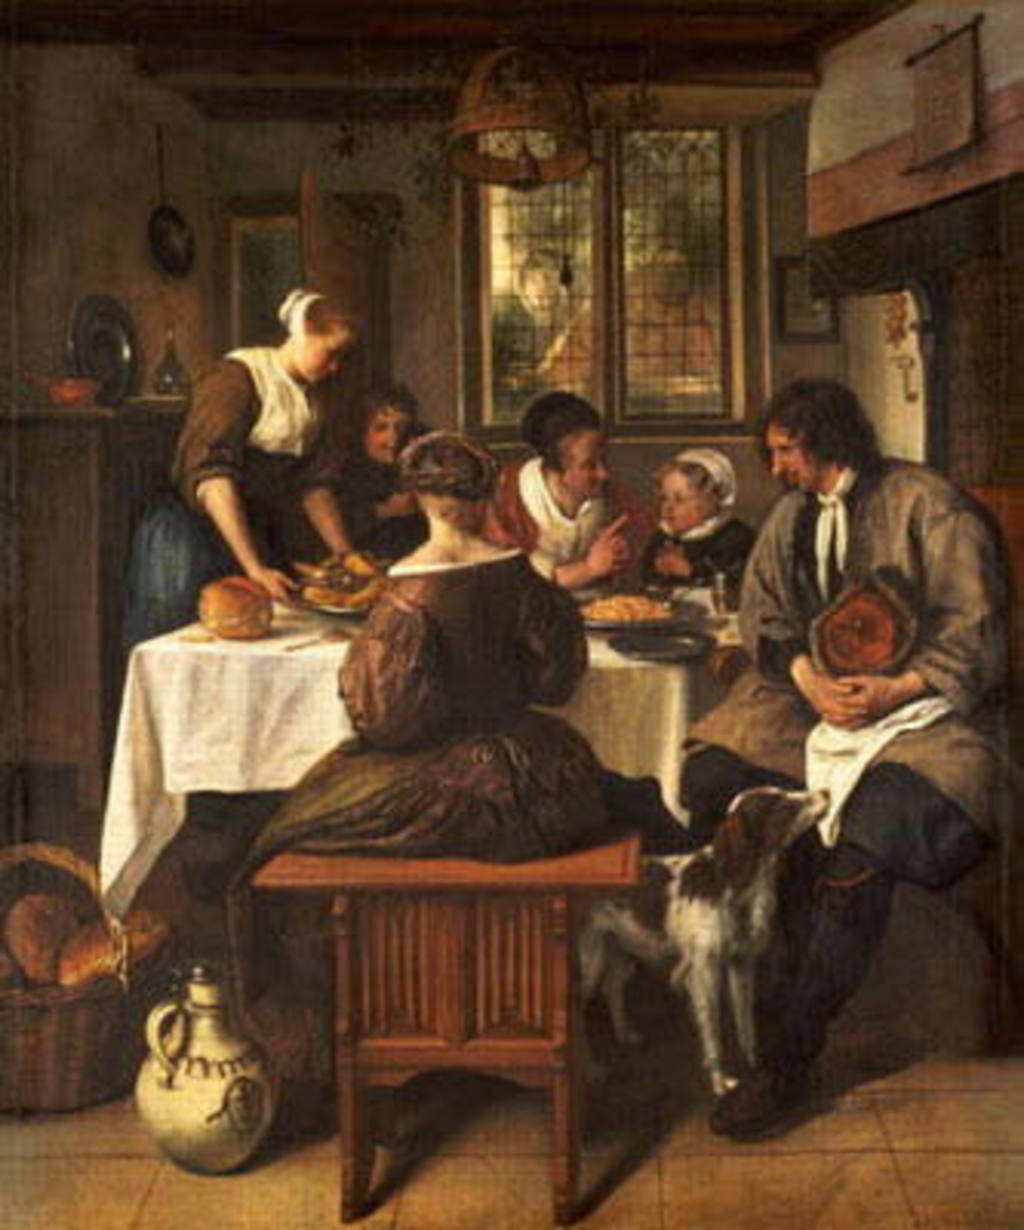 Cuadro de Jan Havicksz Steen de familia comiendo garbanzos